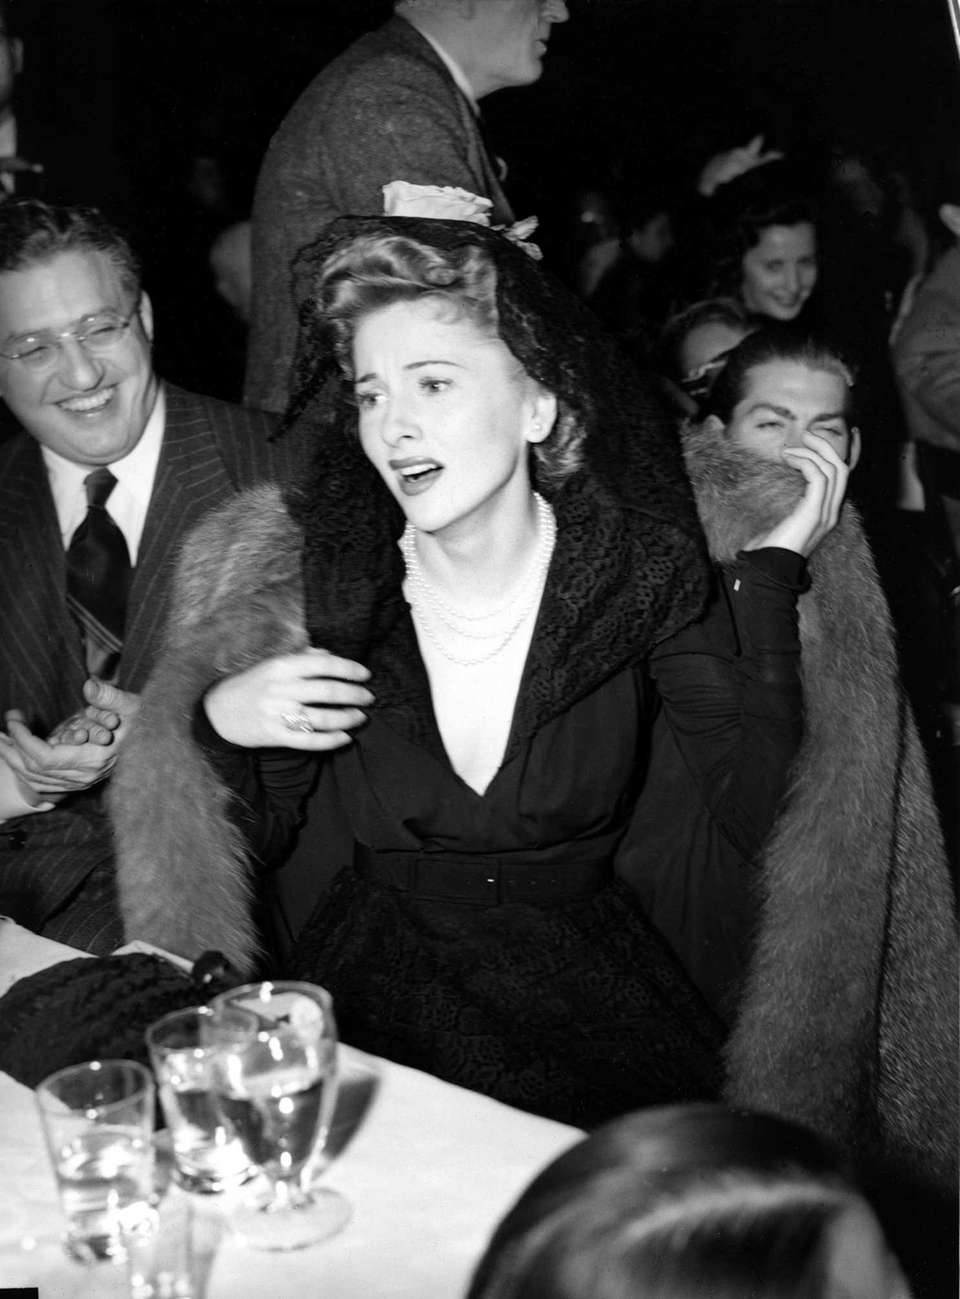 Actor Joan Fontaine, reacting as she wins the